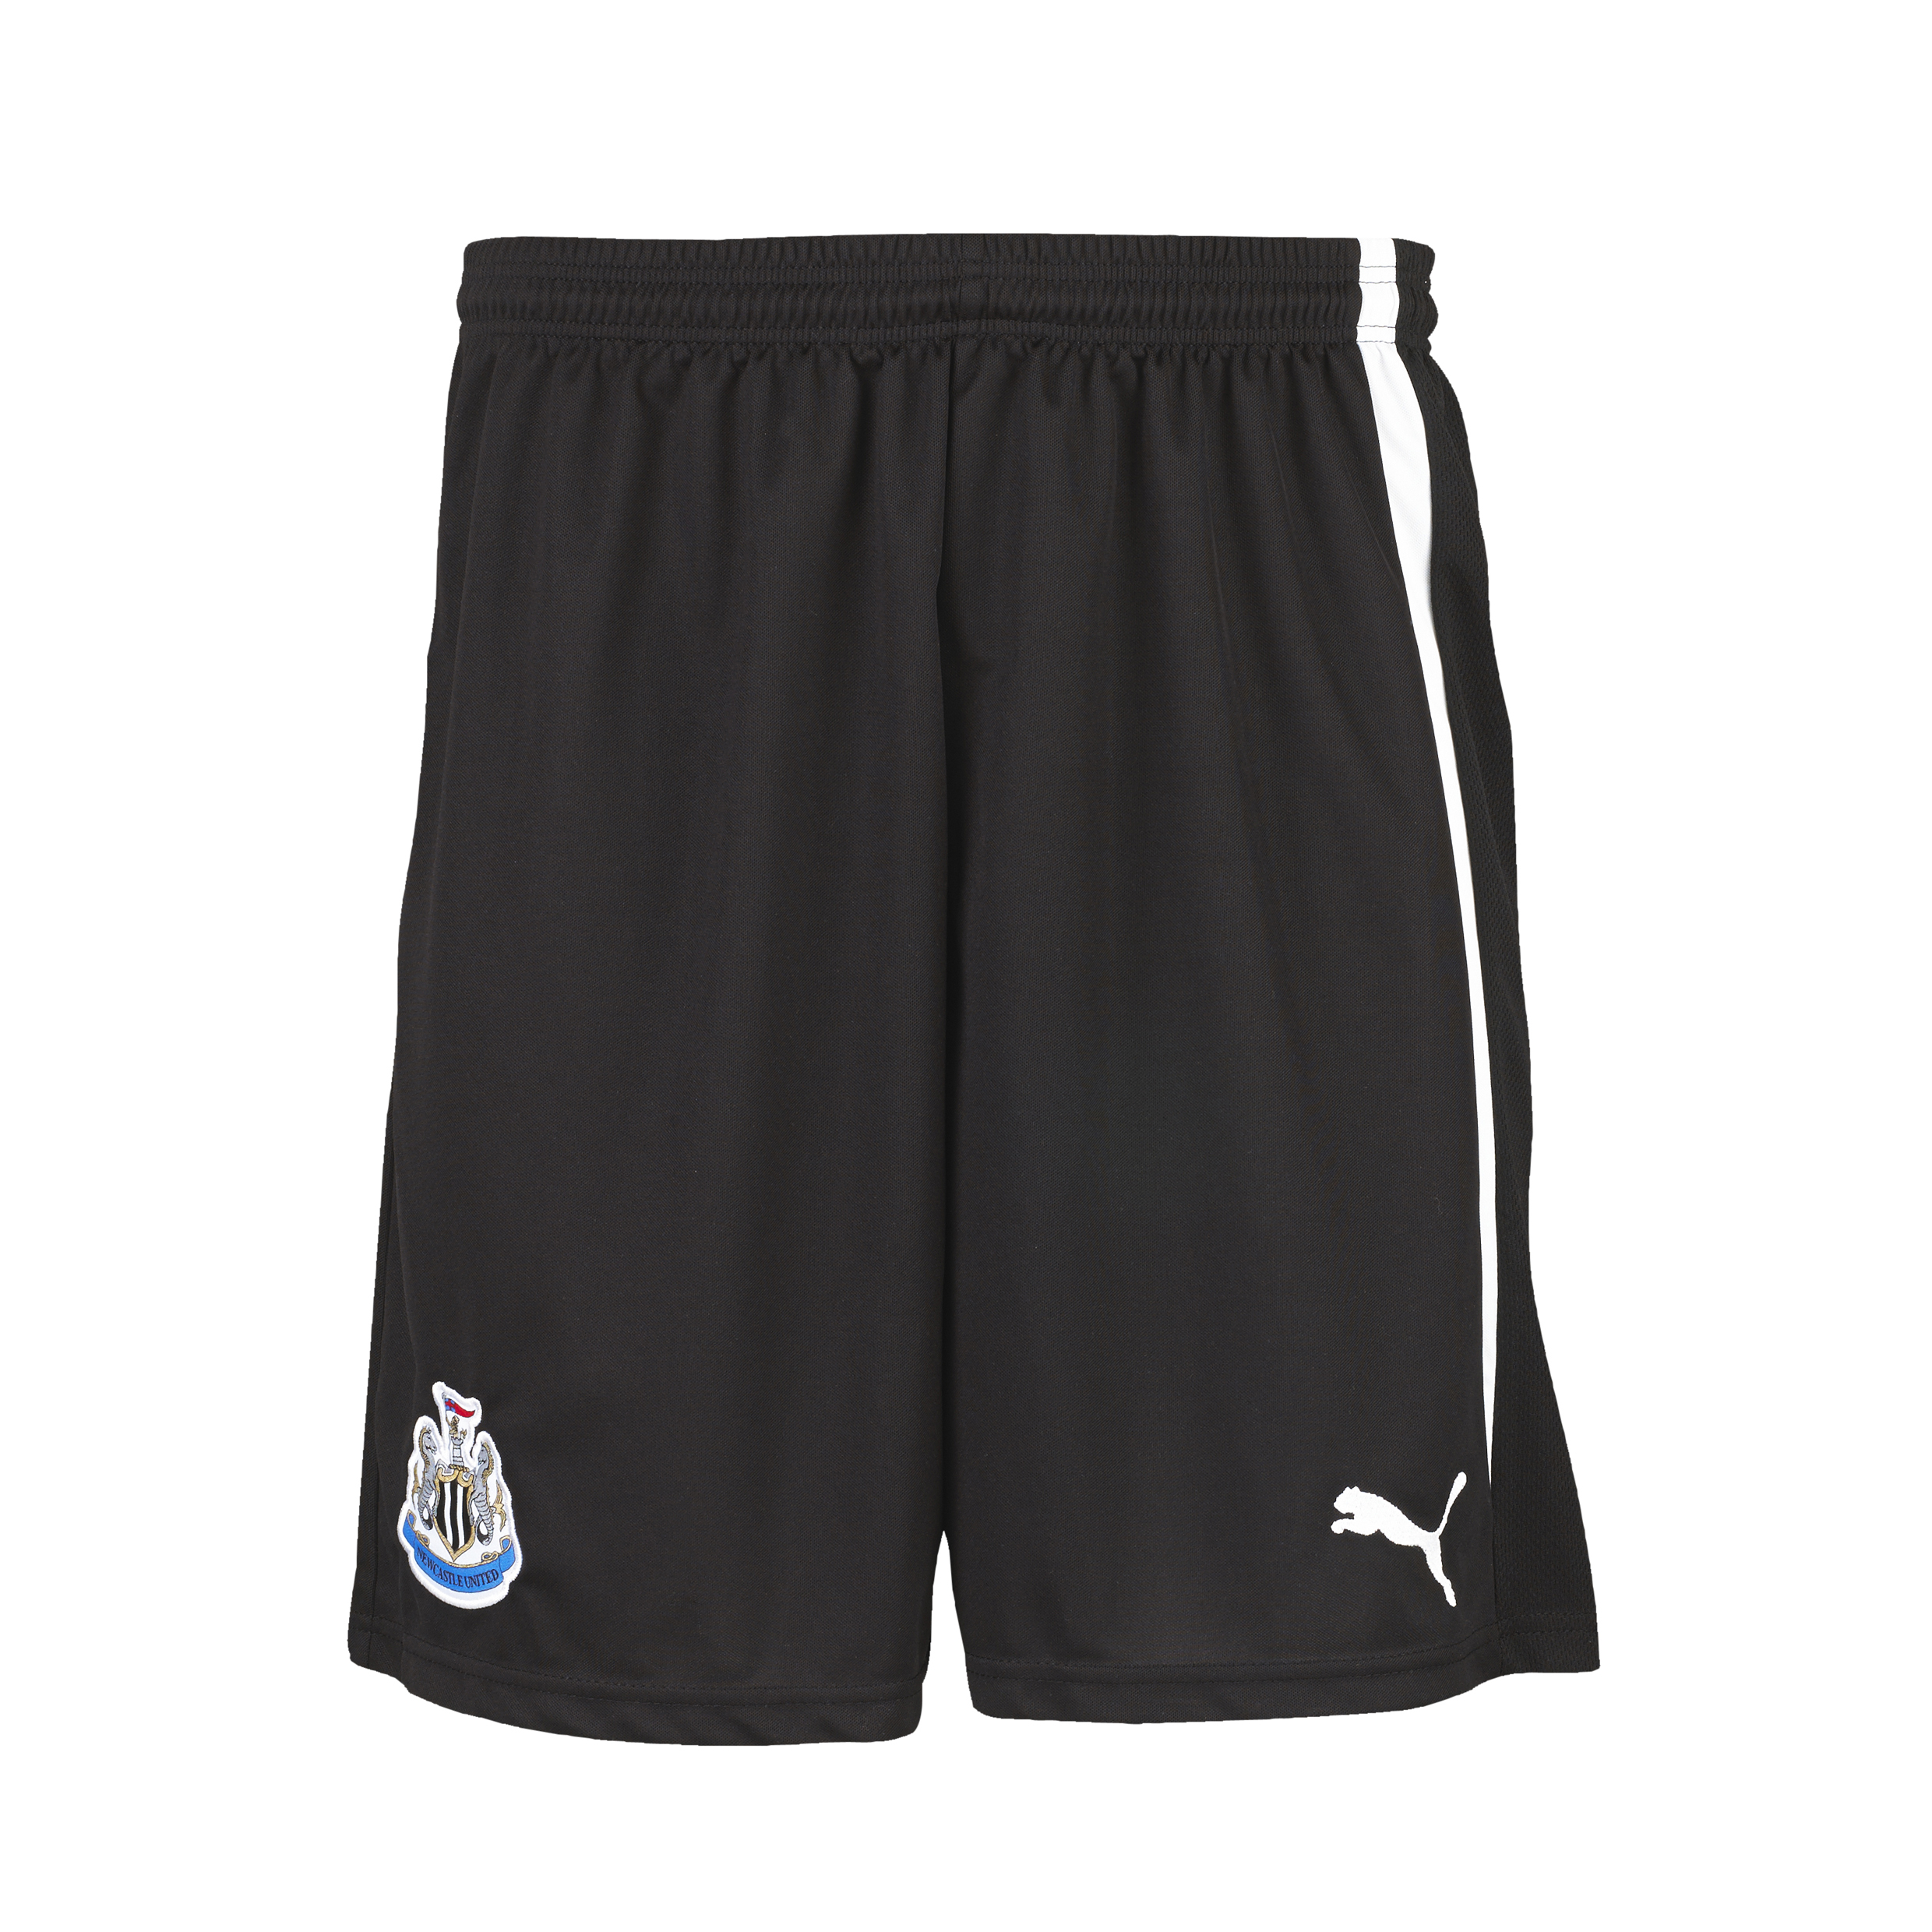 Newcastle United Home Shorts 2013/14